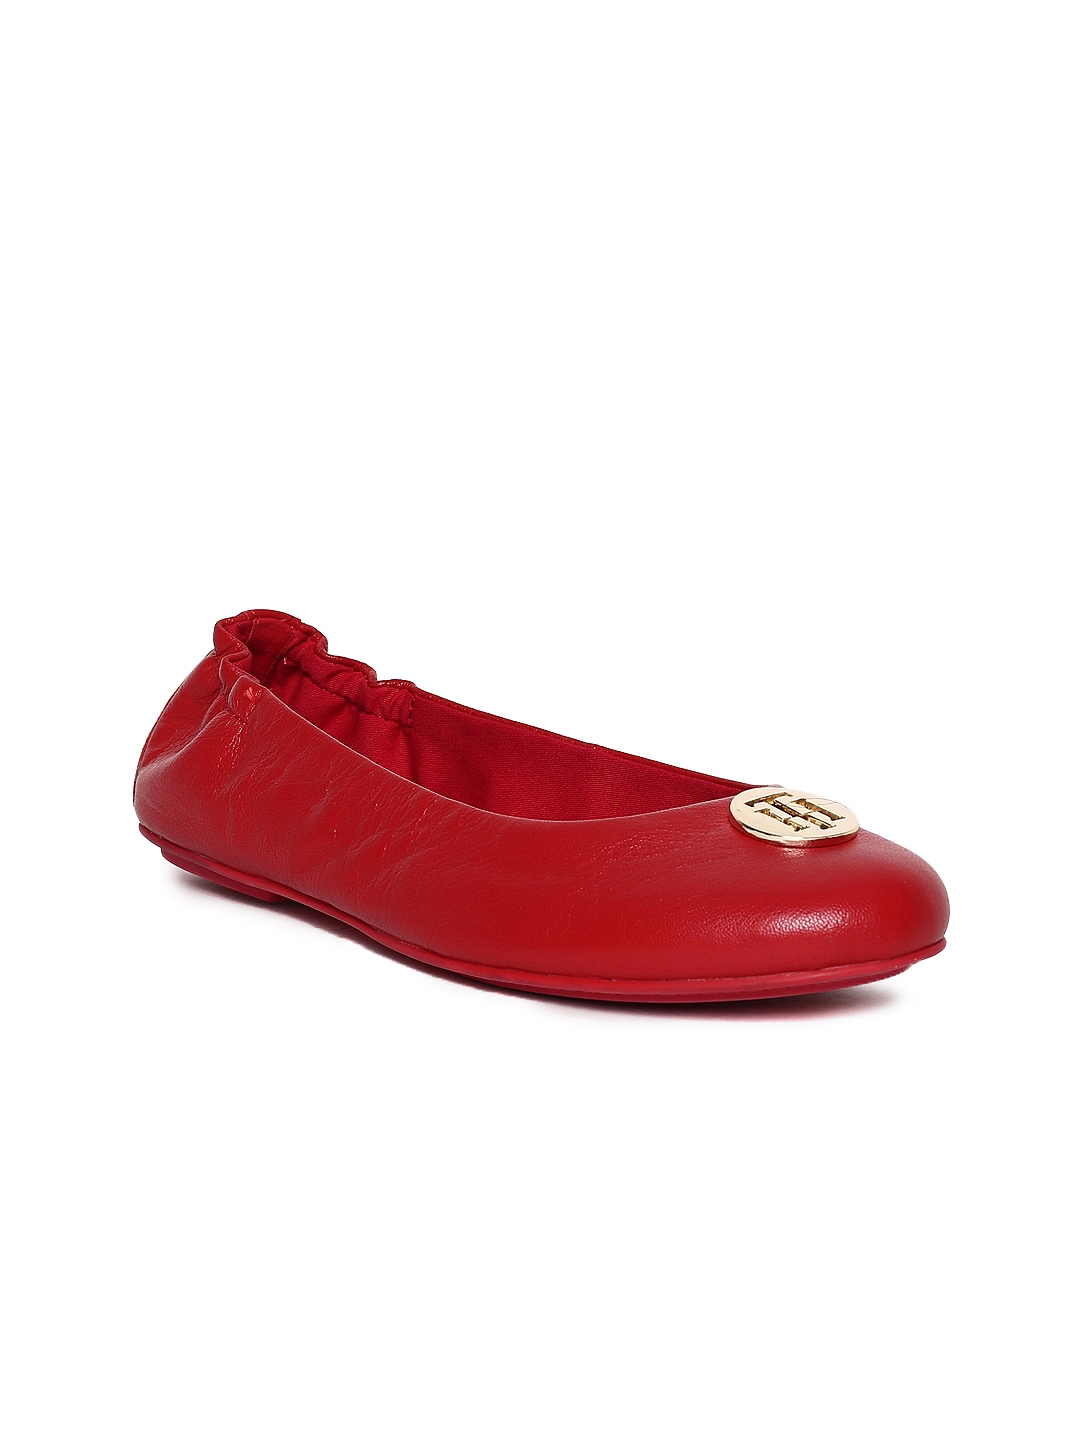 63f66d77e8ab Buy Tommy Hilfiger Women Red Solid Leather Ballerinas - Flats for ...